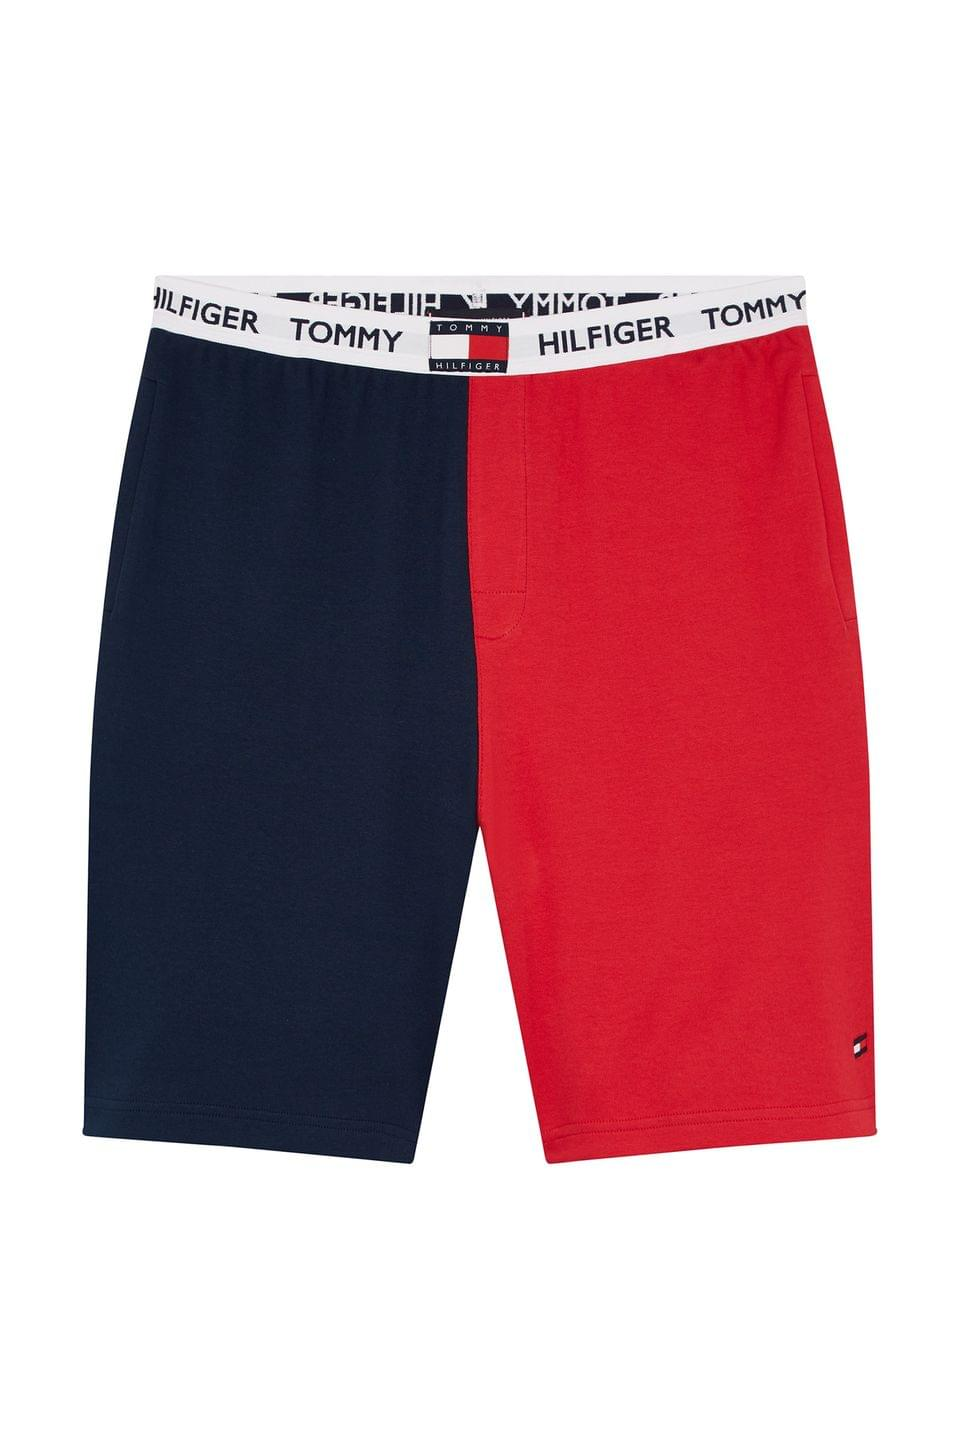 Men's Tommy Hilfiger 85 Blue Loungewear Shorts